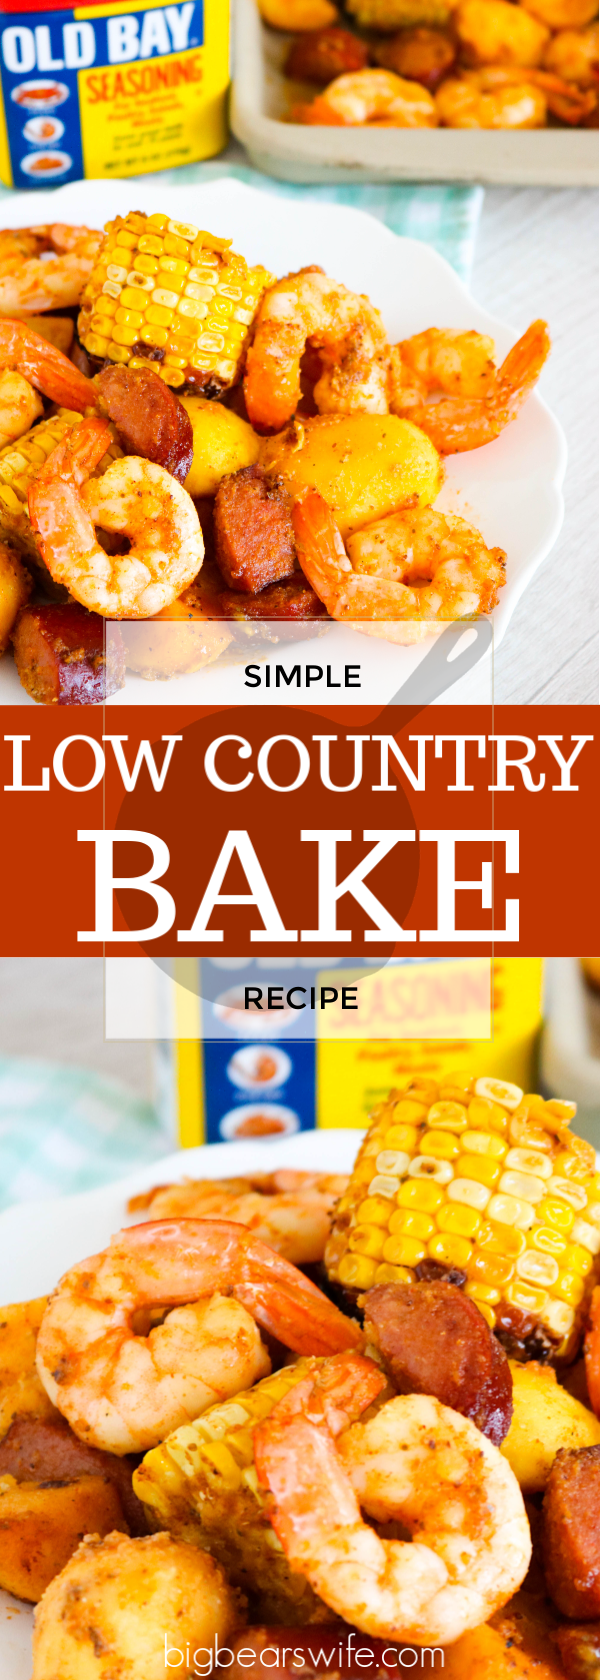 ThisLow Country Bake has all of the classic flavors of aLow Country Boil but it's baked in the oven and done in about 30 minutes!#lowcountryboil Low Country Boil in the oven #LowCountryBake